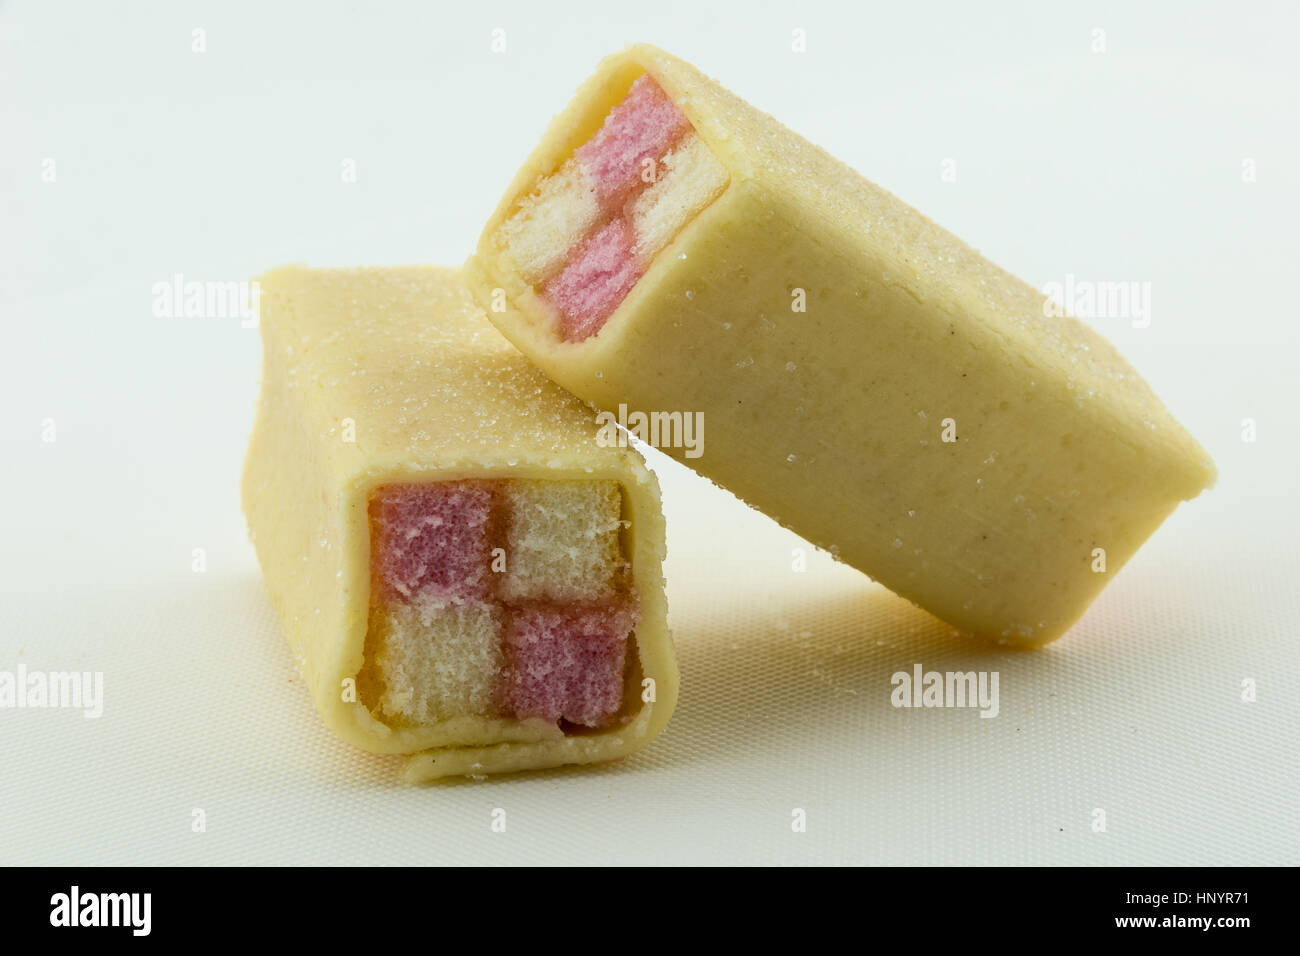 Two Battenberg cake on a white background - Stock Image